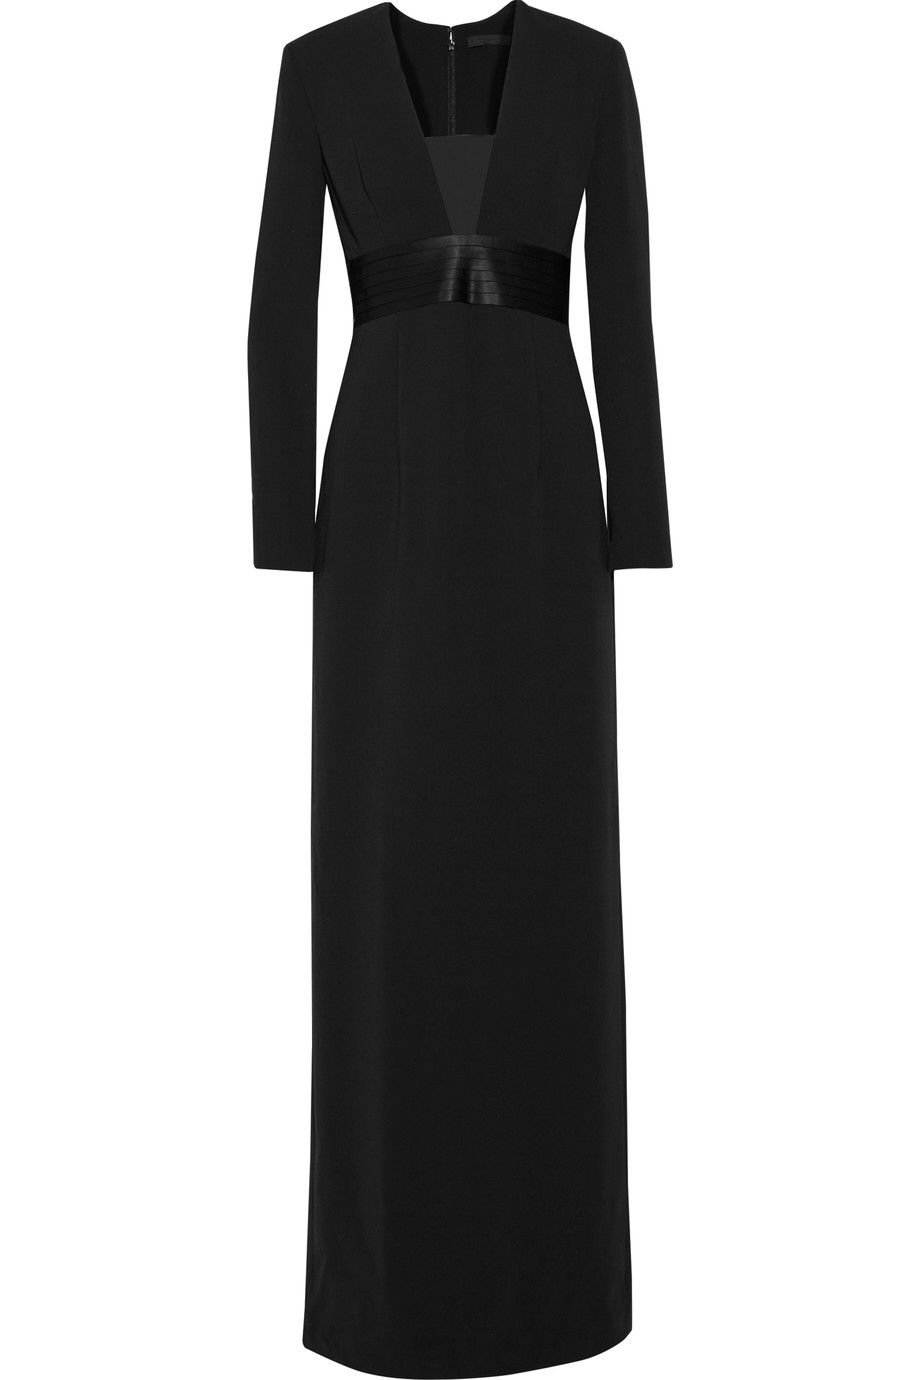 ALEXANDER WANG ORGANZA AND SATIN-PANELED CREPE GOWN $394.20 http://www.